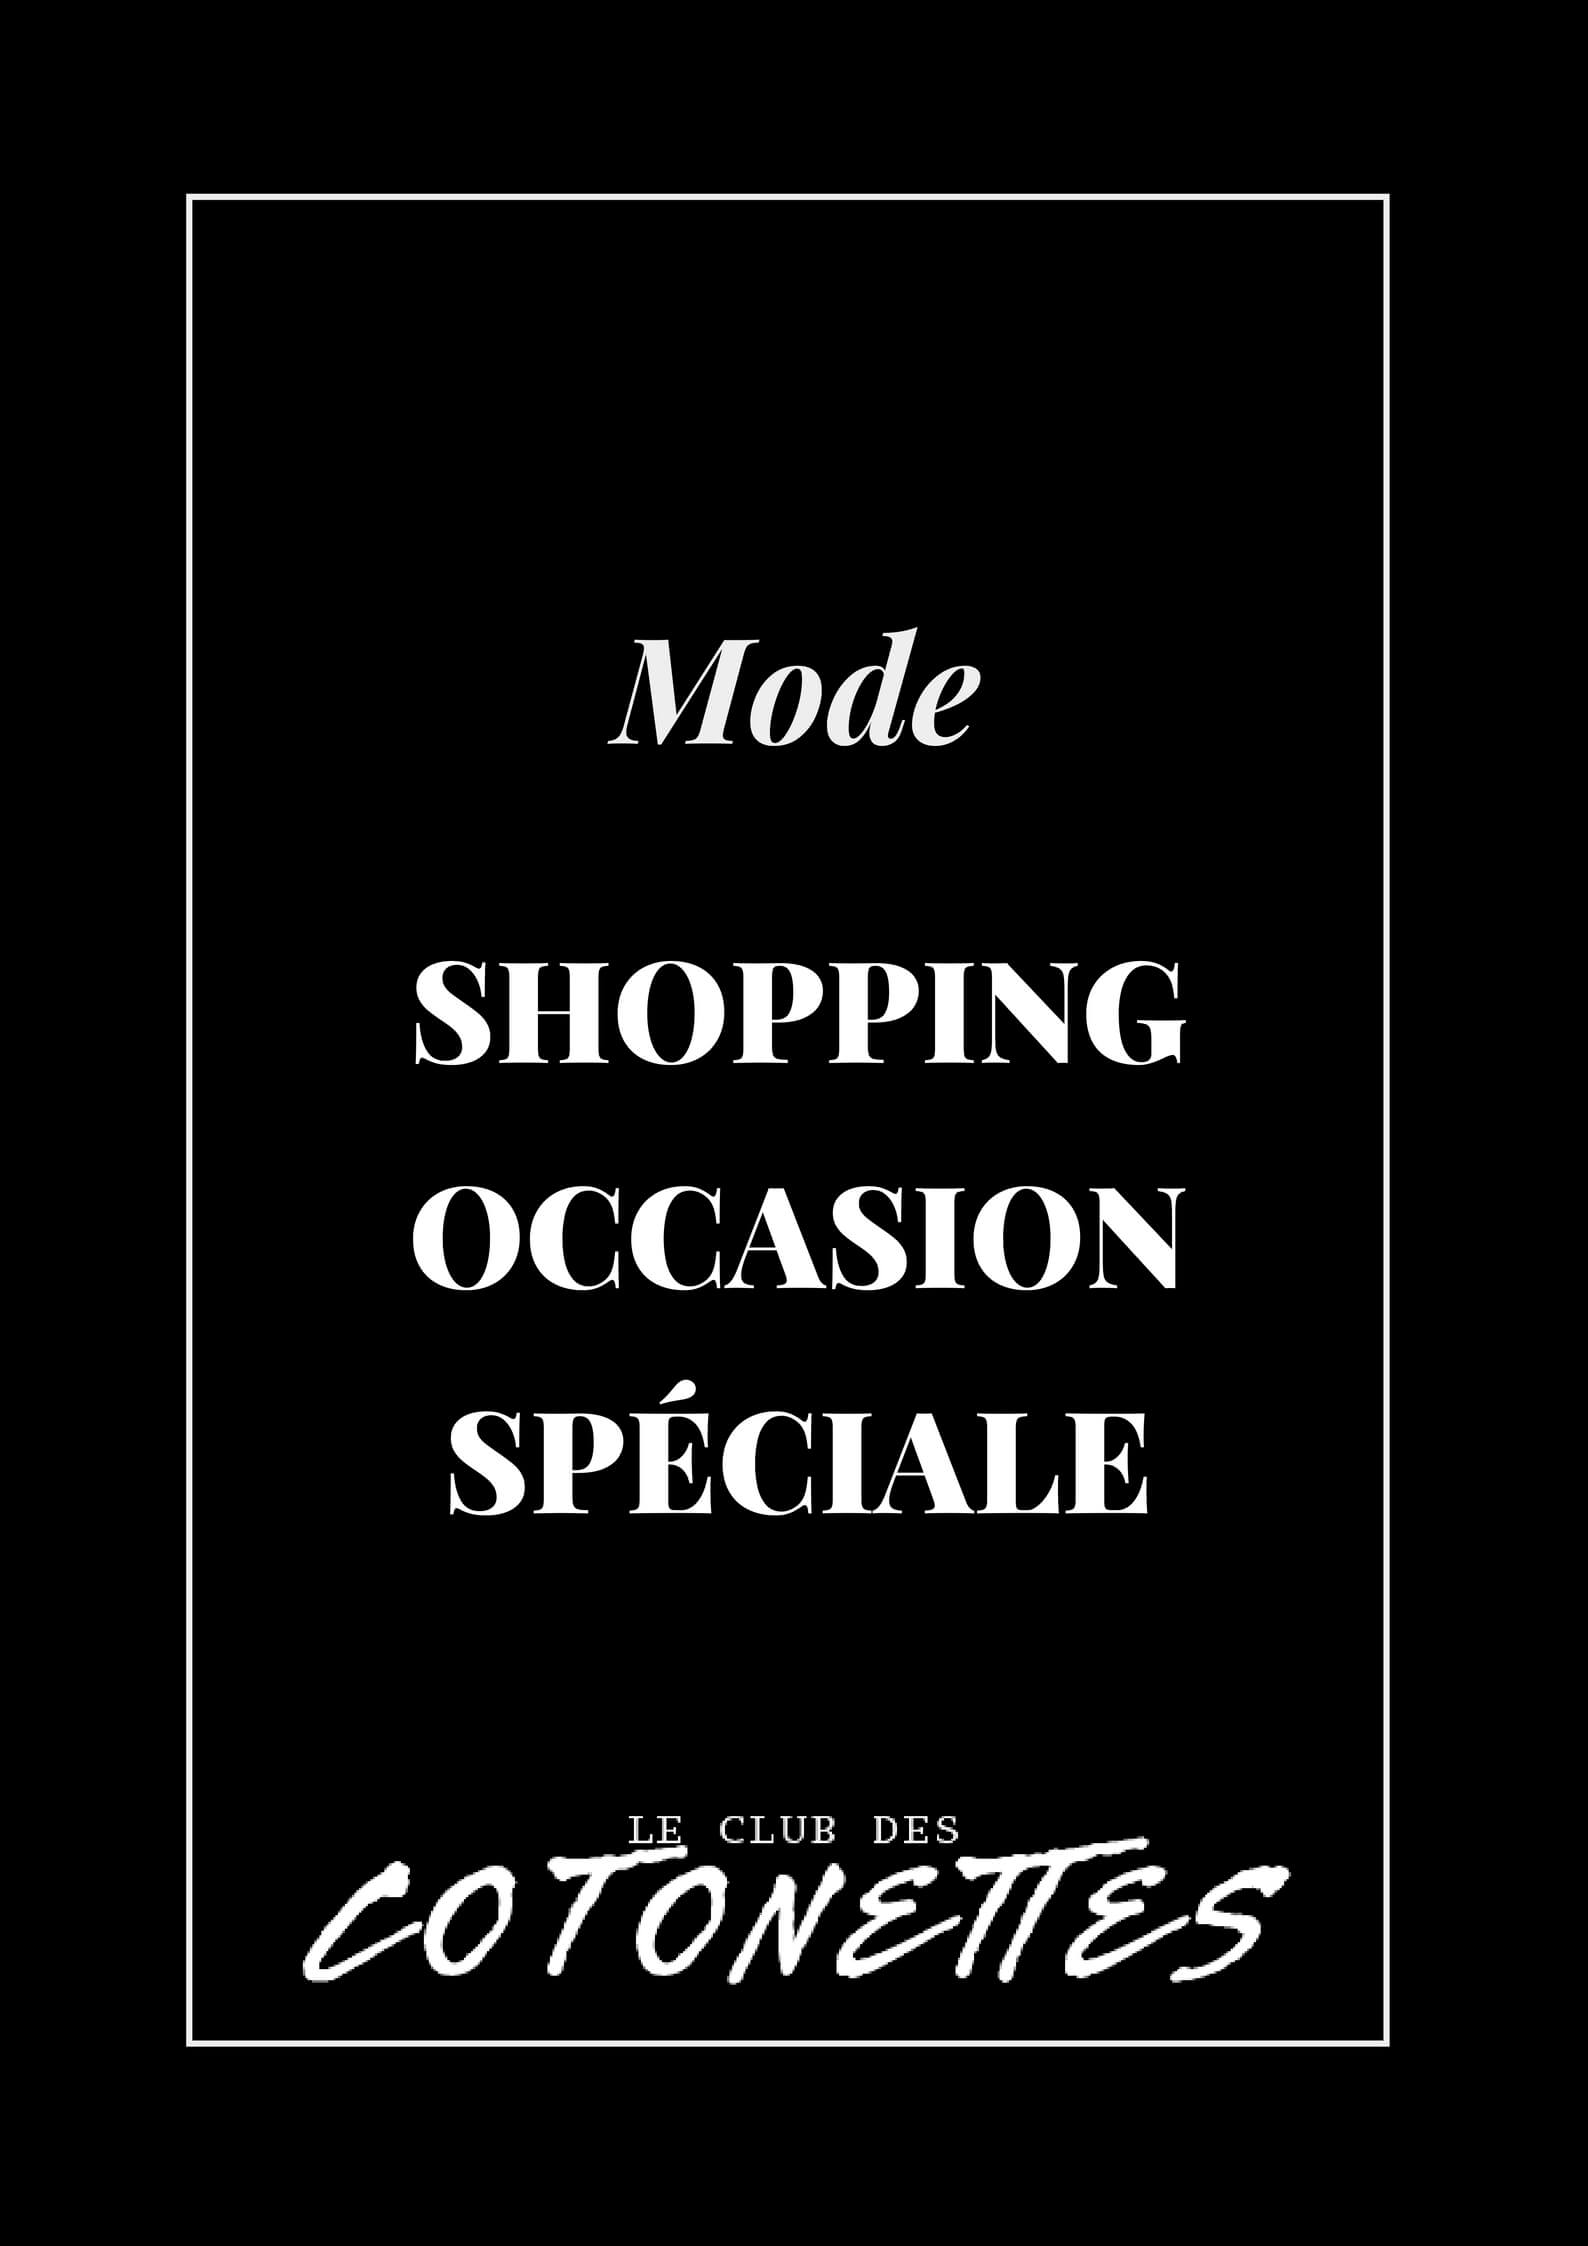 Mode - Shopping Occasion Spéciale